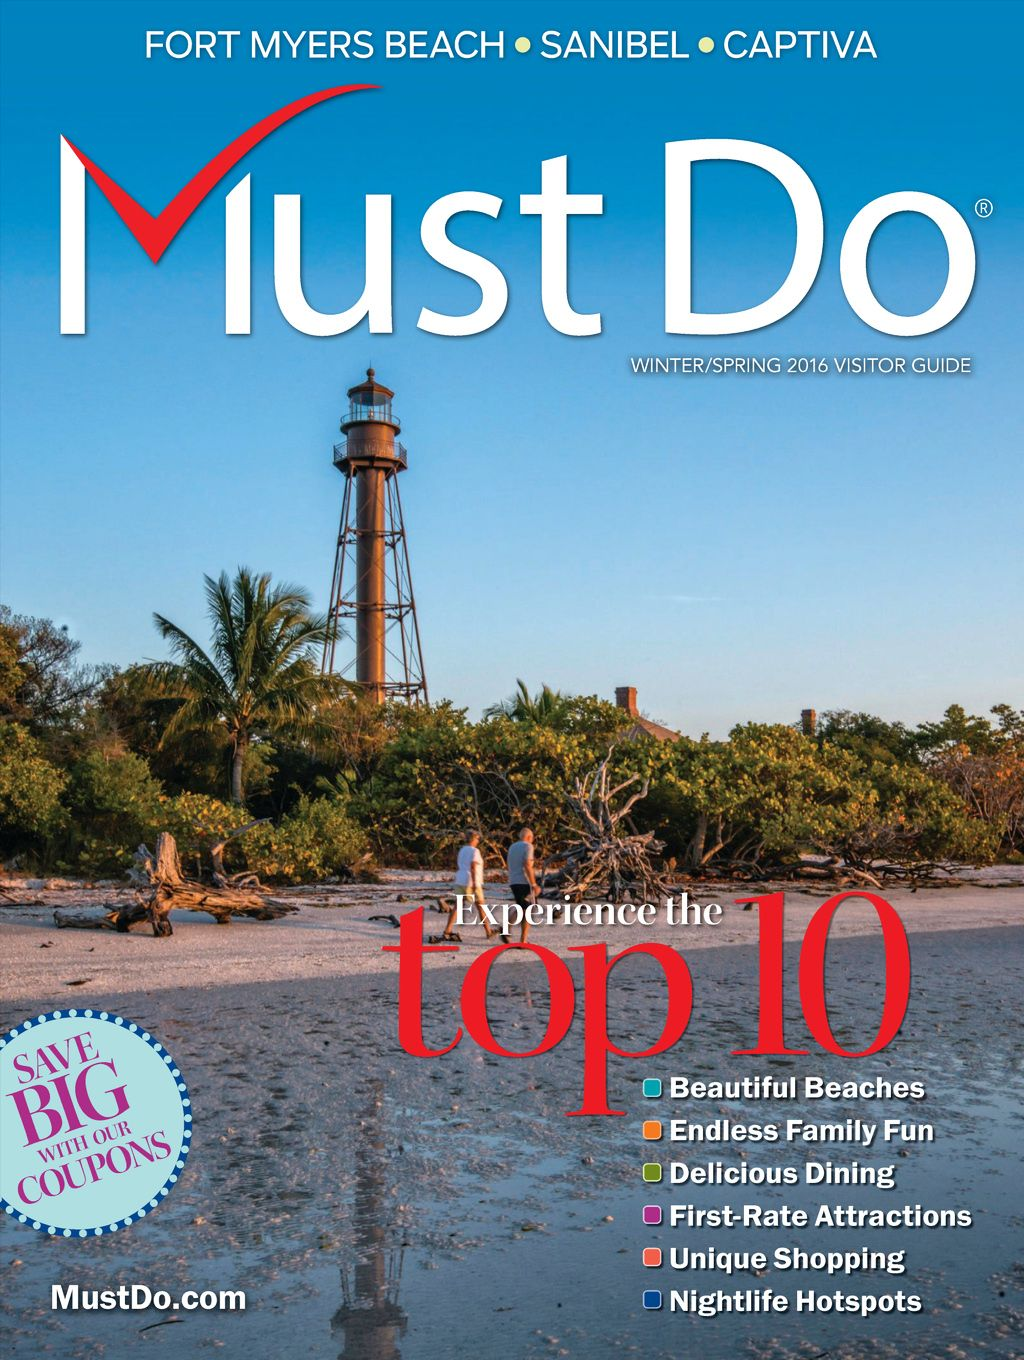 Fort Myers Beach Sanibel Captiva Island Things To Do Must Visitor